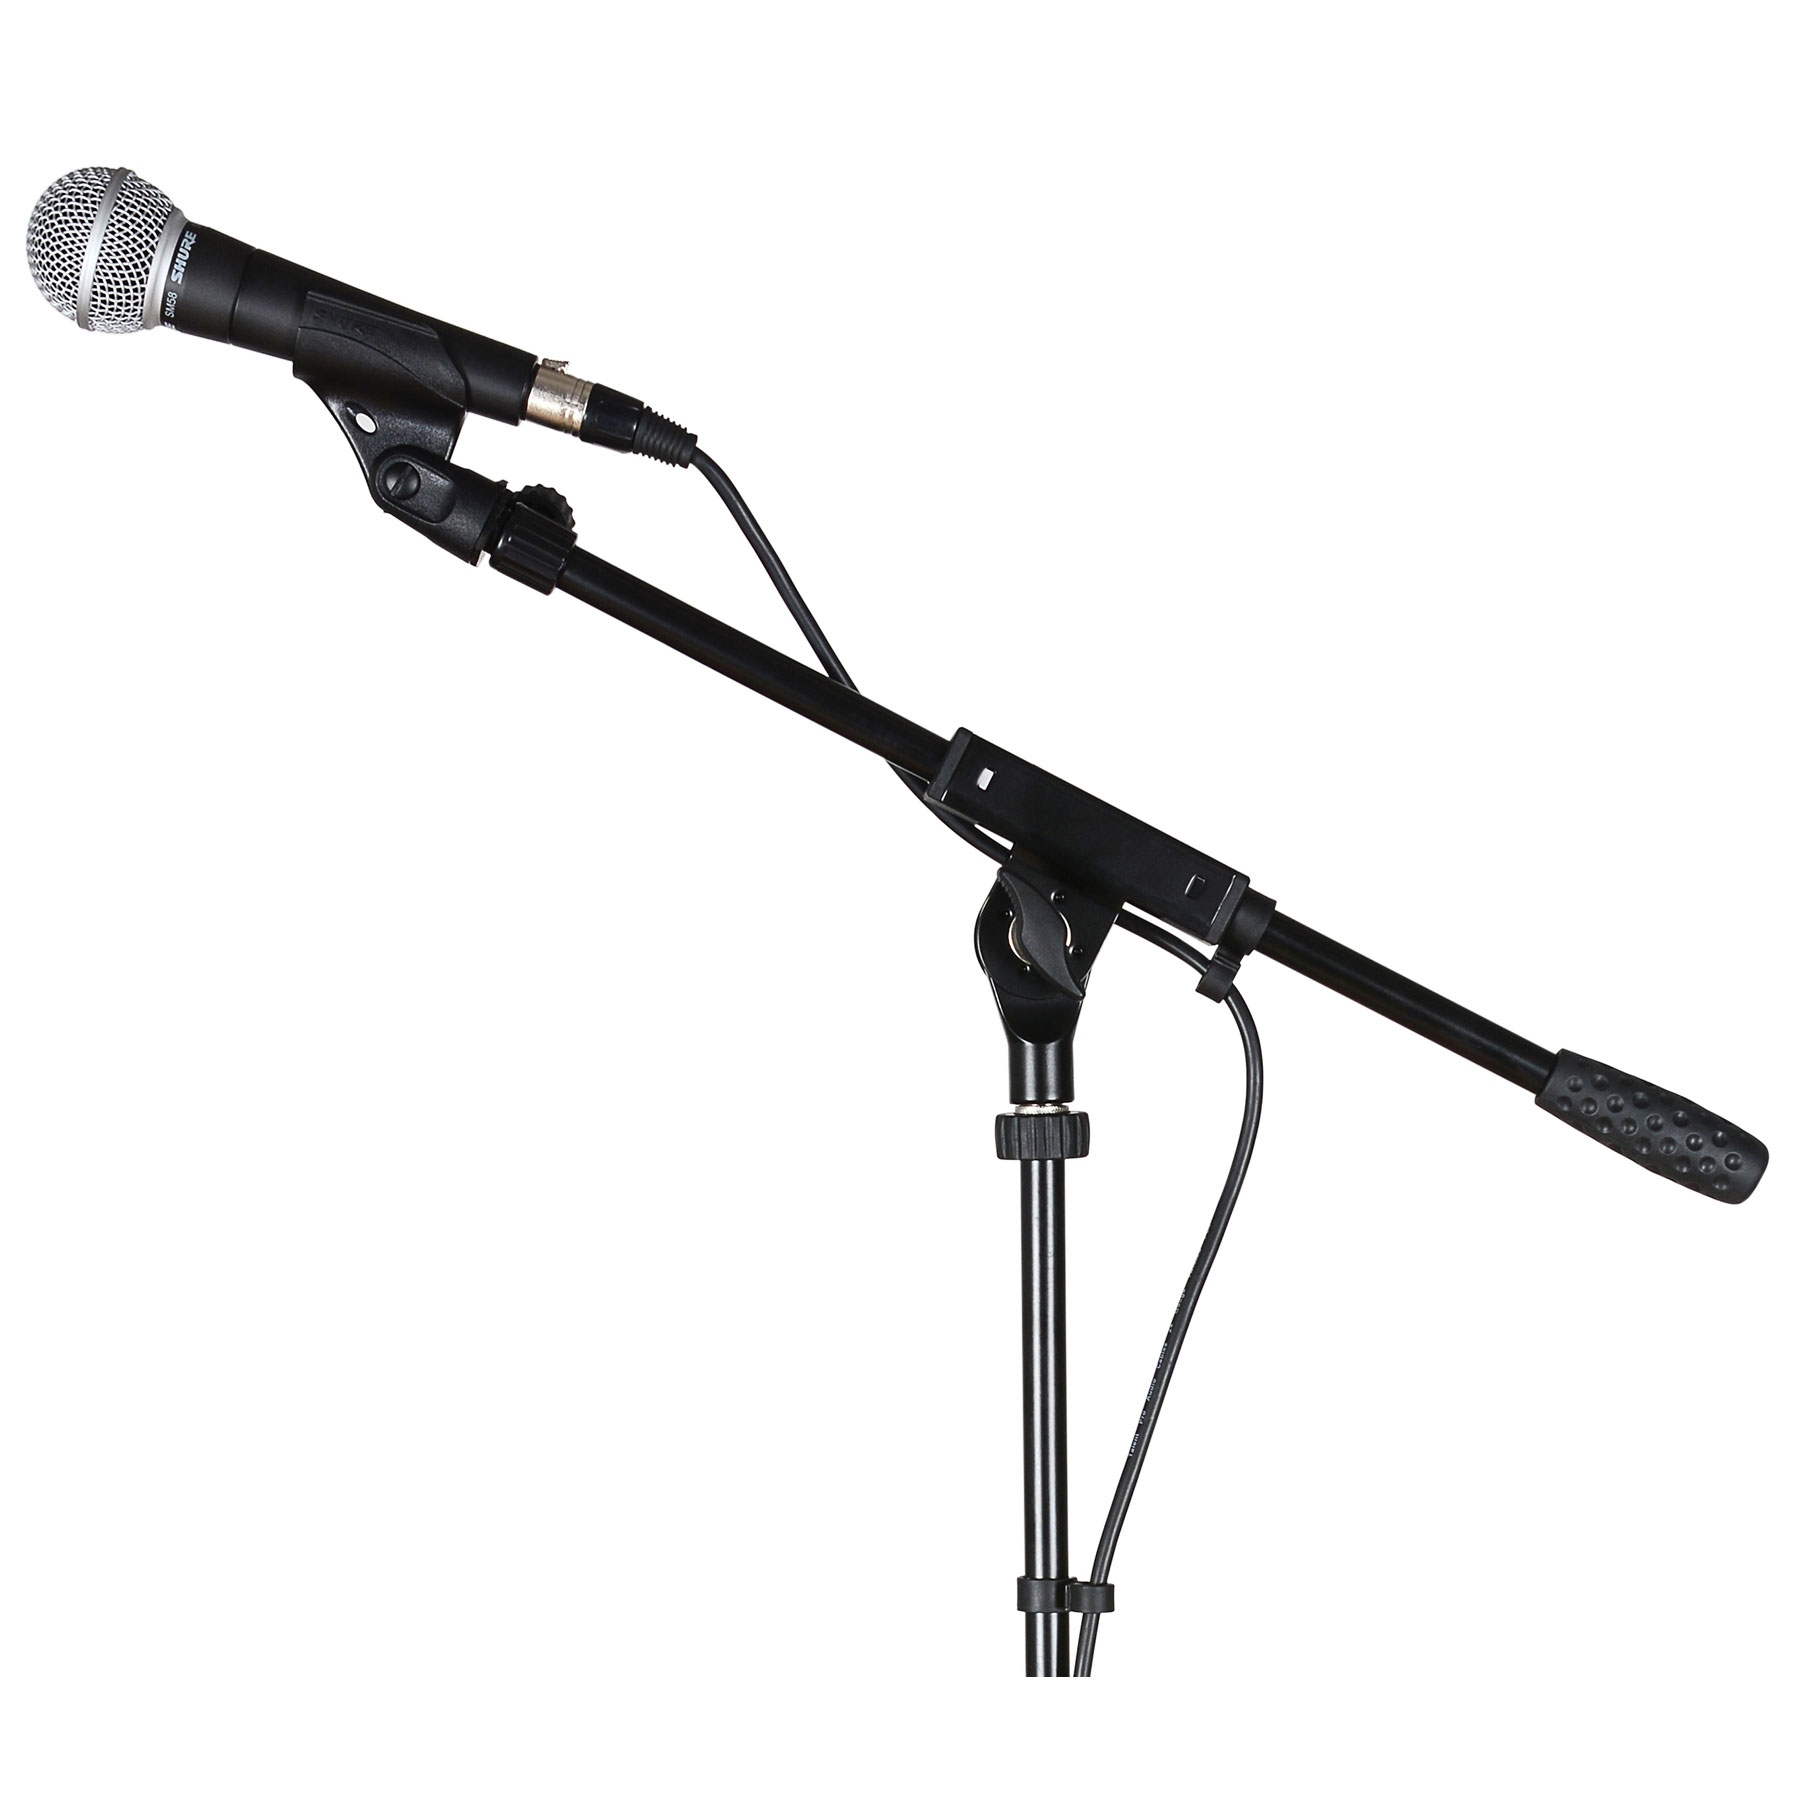 1800x1800 Shure Sm58 Microphone Bundle With Boom Stand And Cable